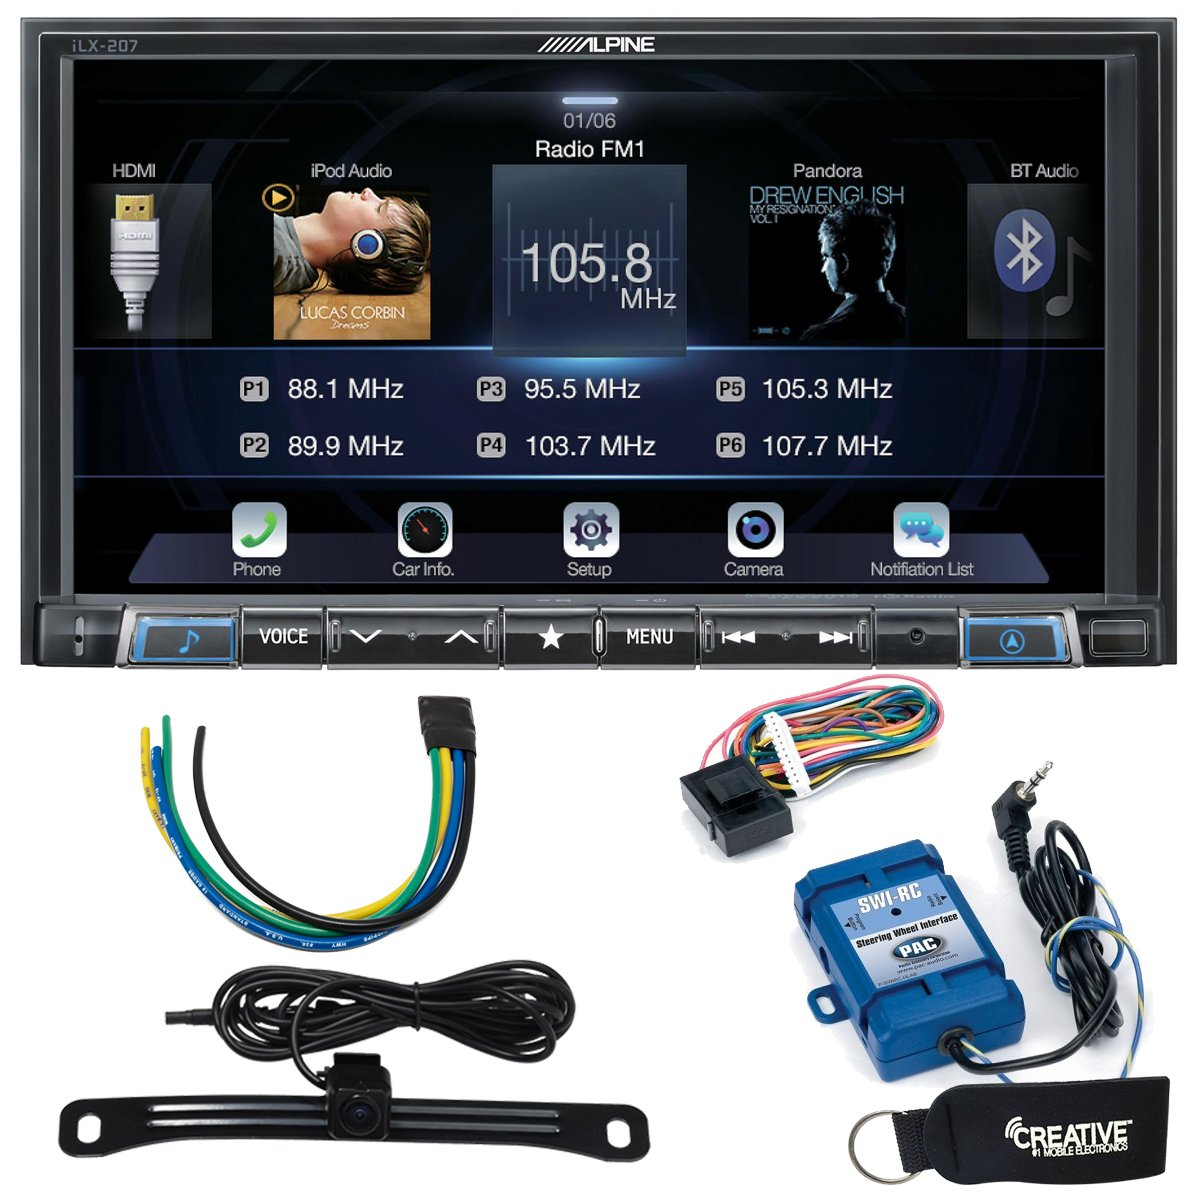 Alpine iLX-207 Compatible with Car Play & Android Auto with Rear View Camera, Steering Interface & Trigger Module